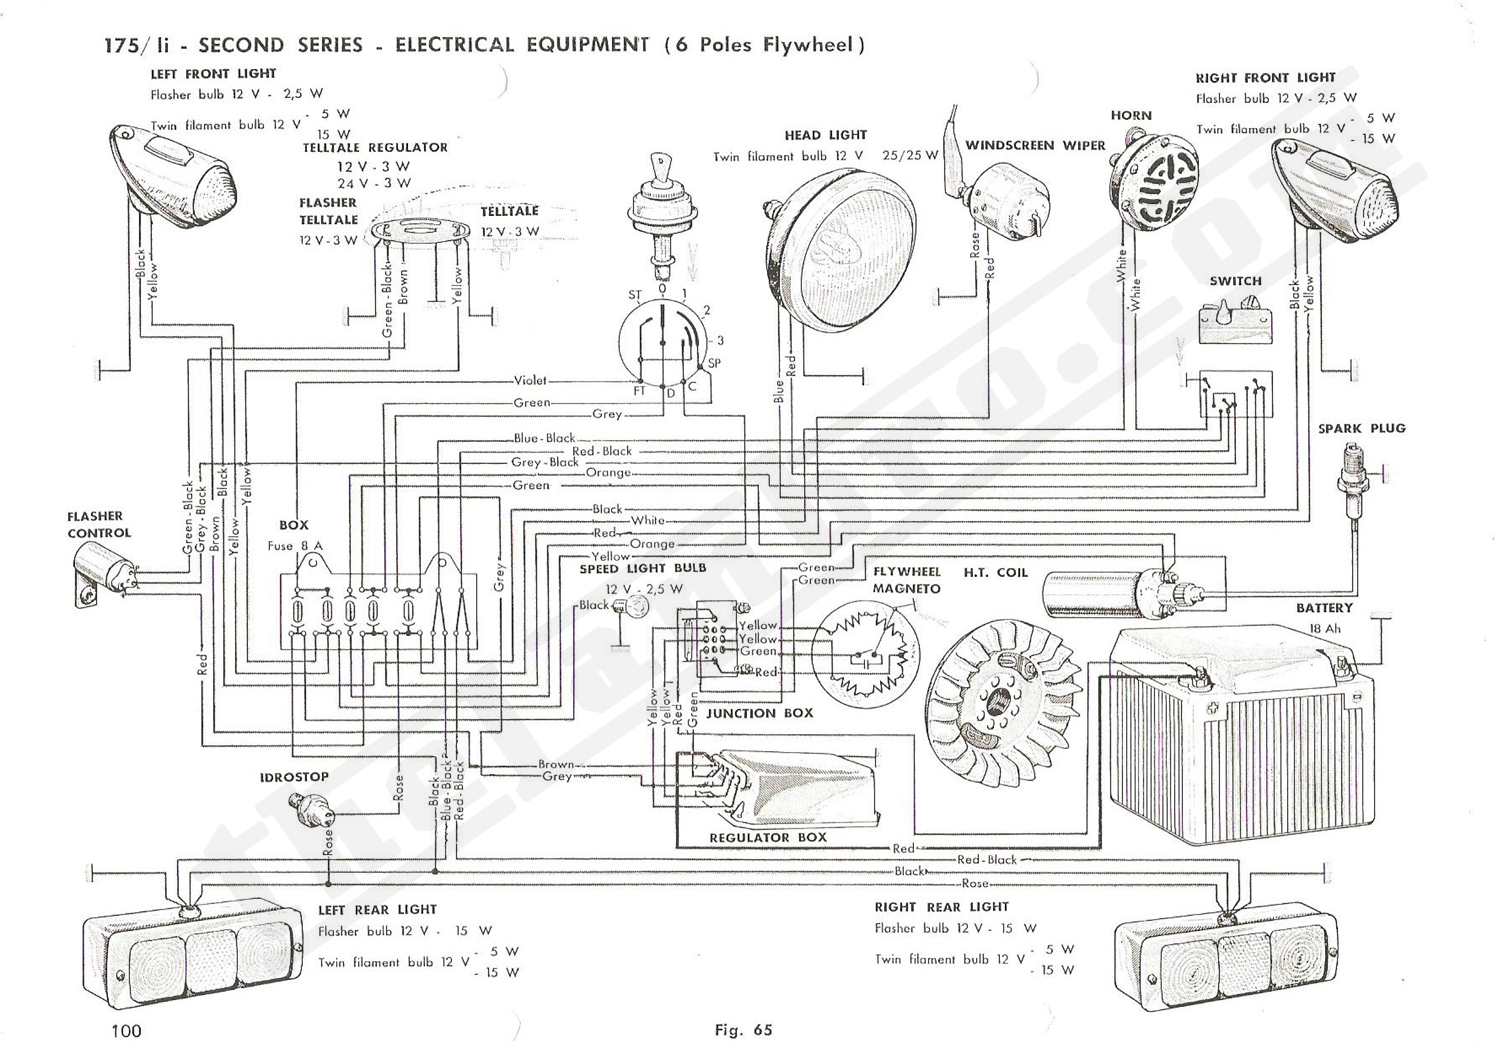 li175_s2_6pole thelambro com electrics series 65 wiring diagram at alyssarenee.co